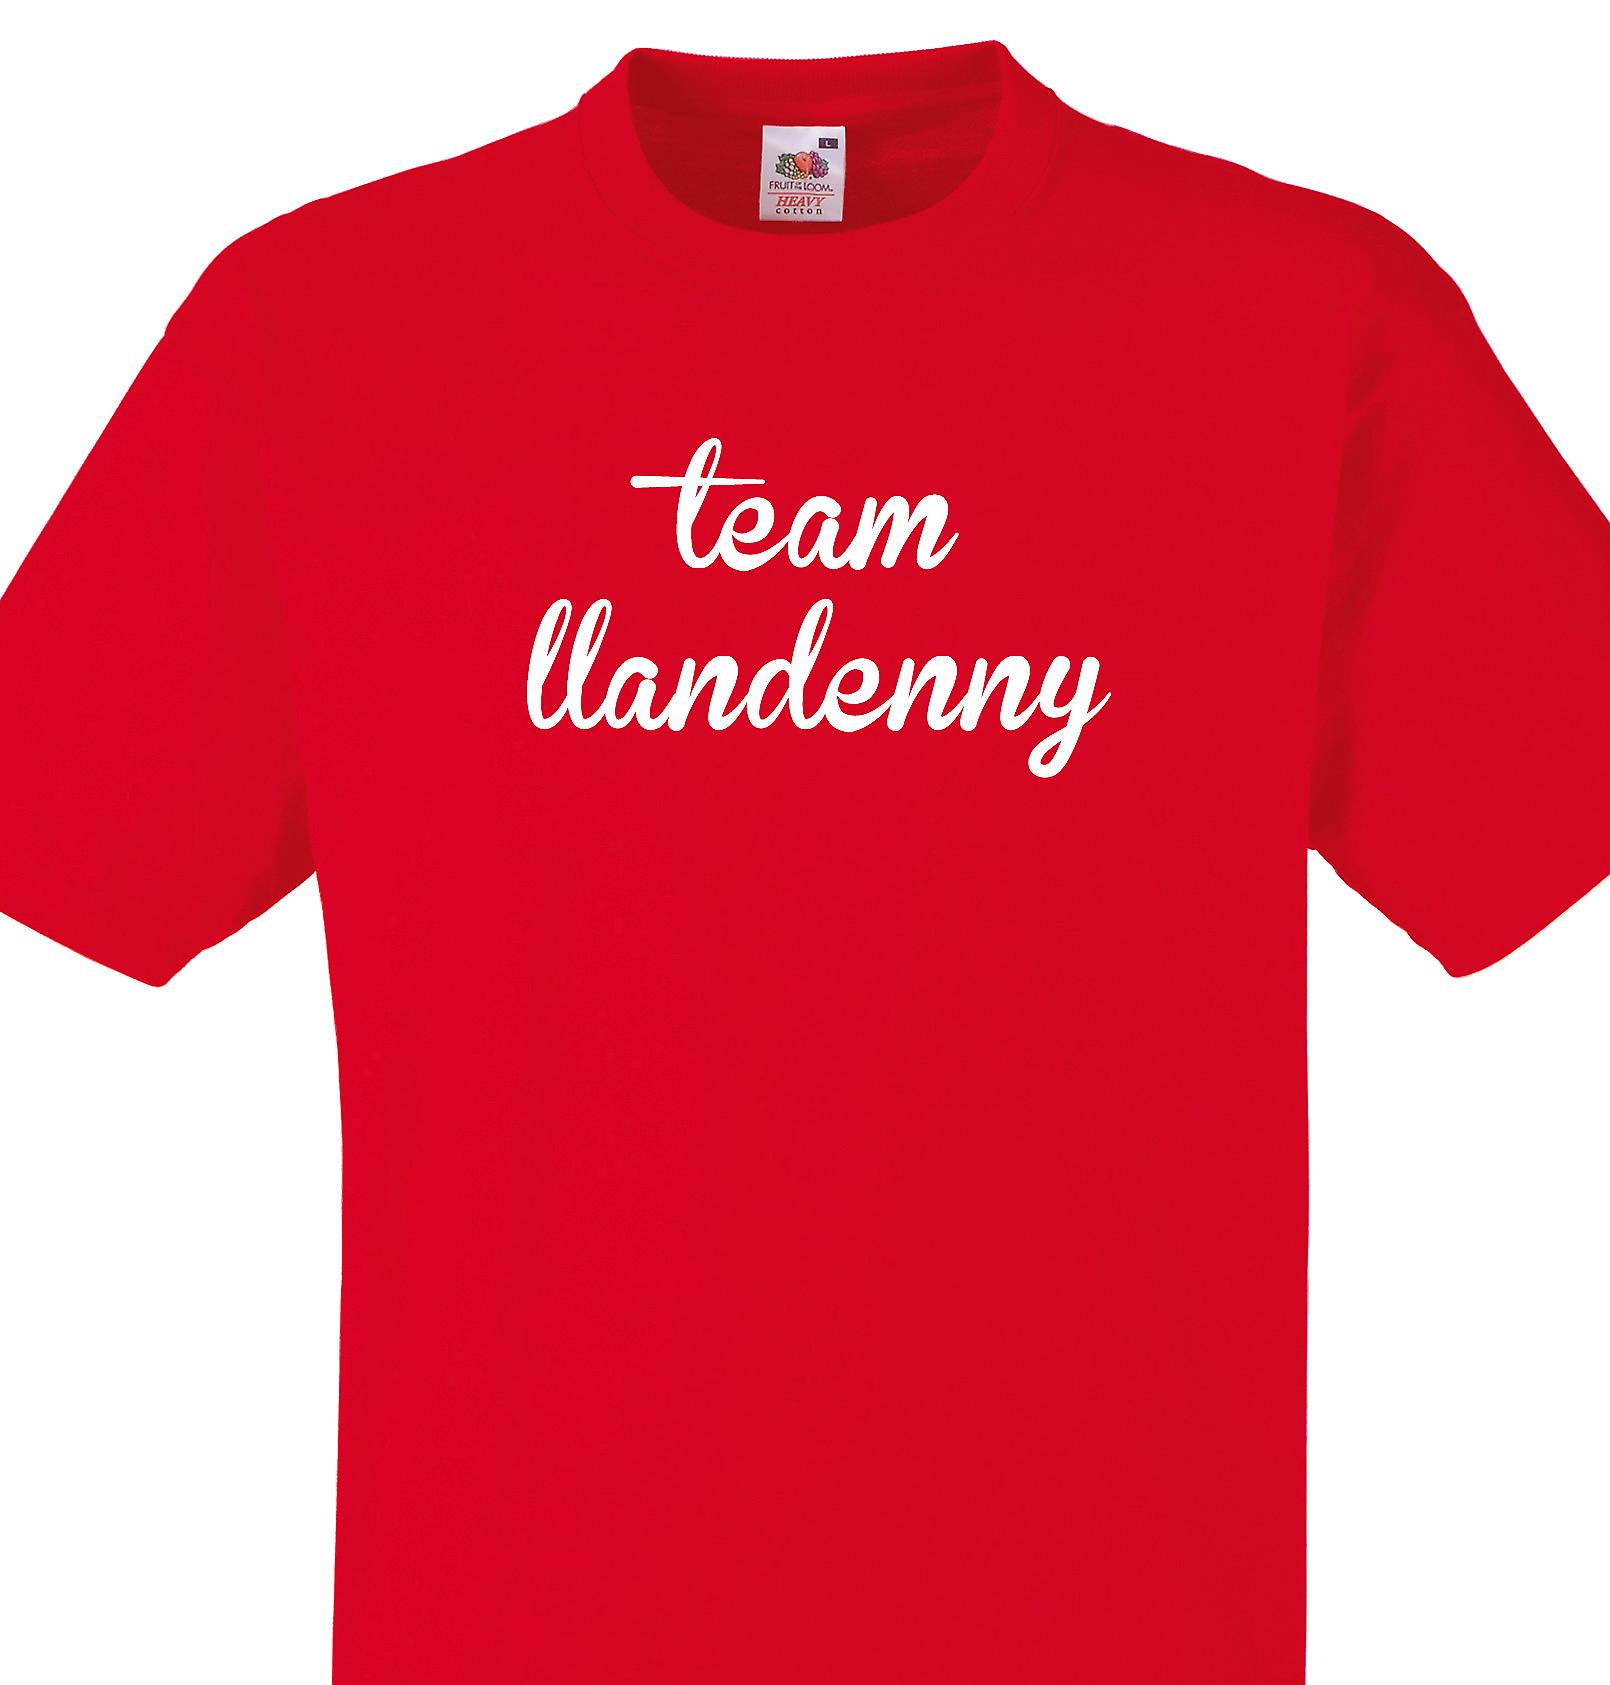 Team Llandenny Red T shirt